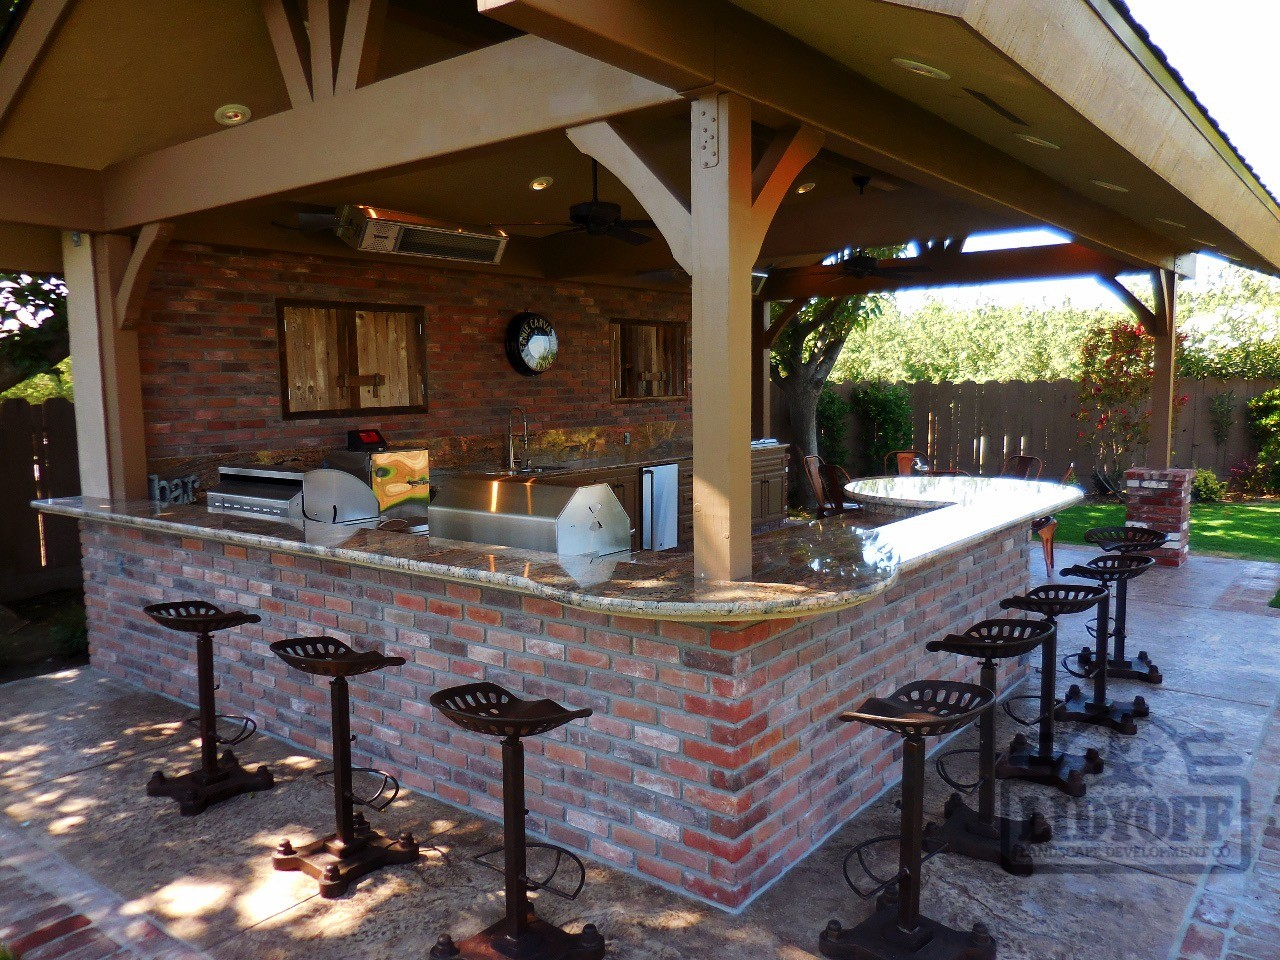 Outdoor Kitchens | Lidyoff Landscaping Development Co. on Patio Kitchen  id=87227